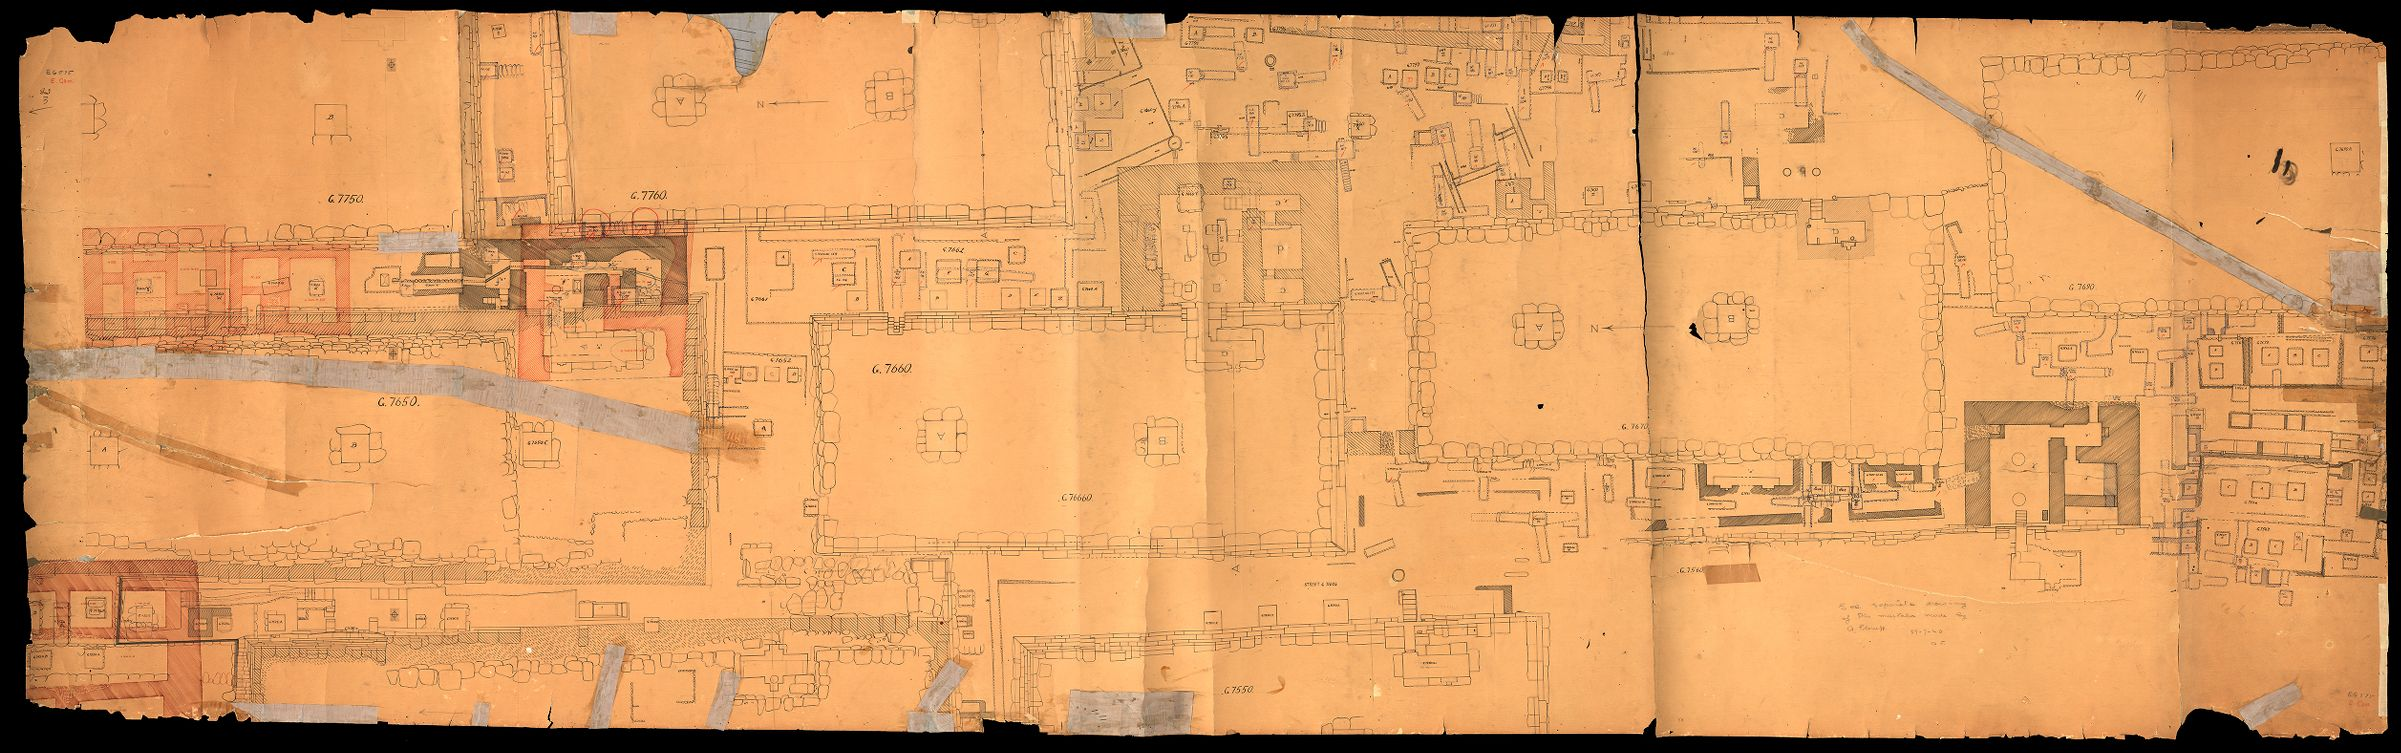 Maps and plans: Plan of cemetery G 7000: G 7650 - G 7760